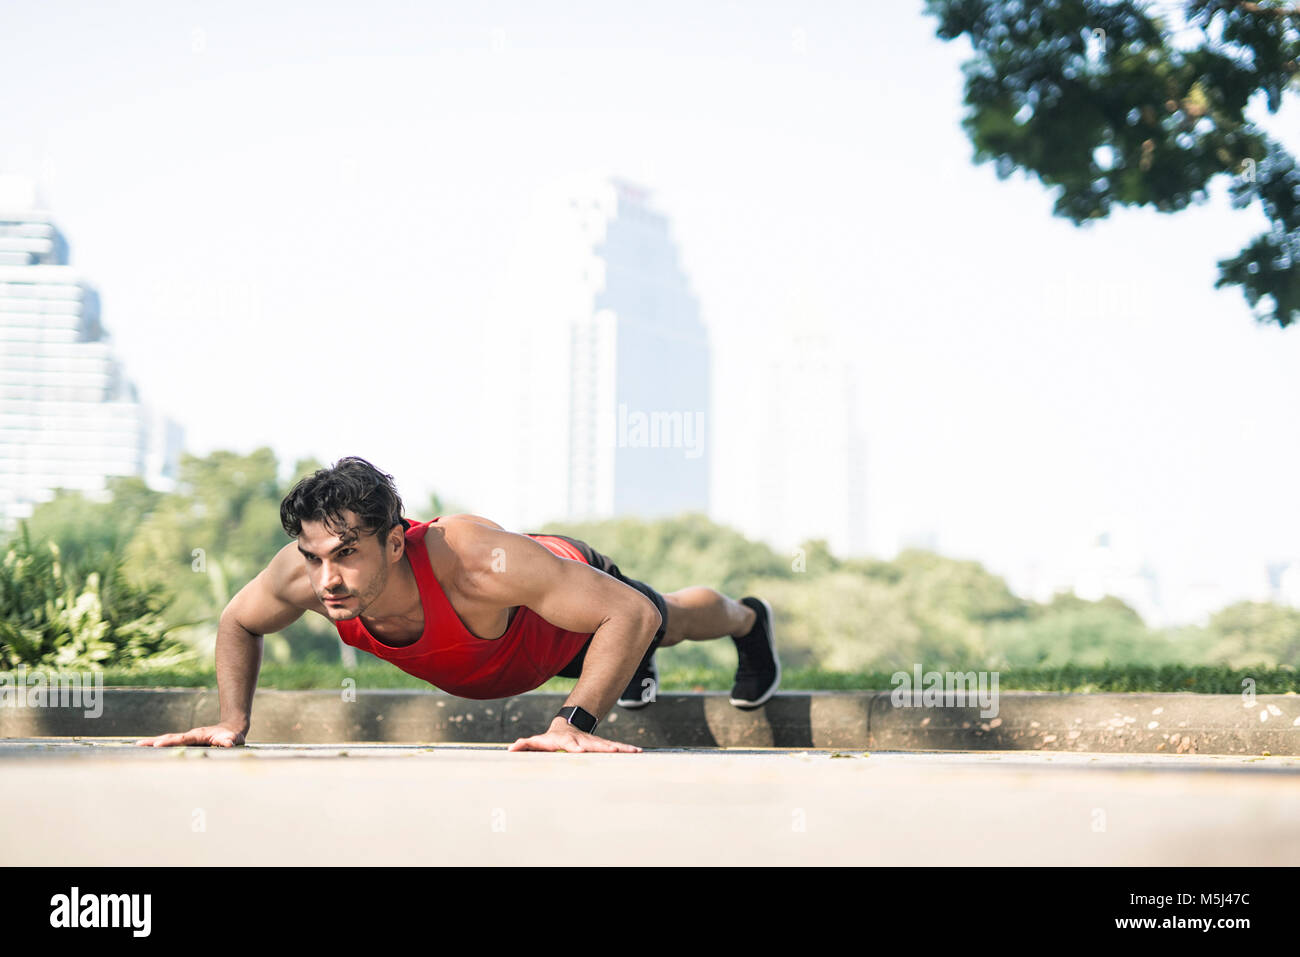 Athlete exercising push-ups in the city - Stock Image